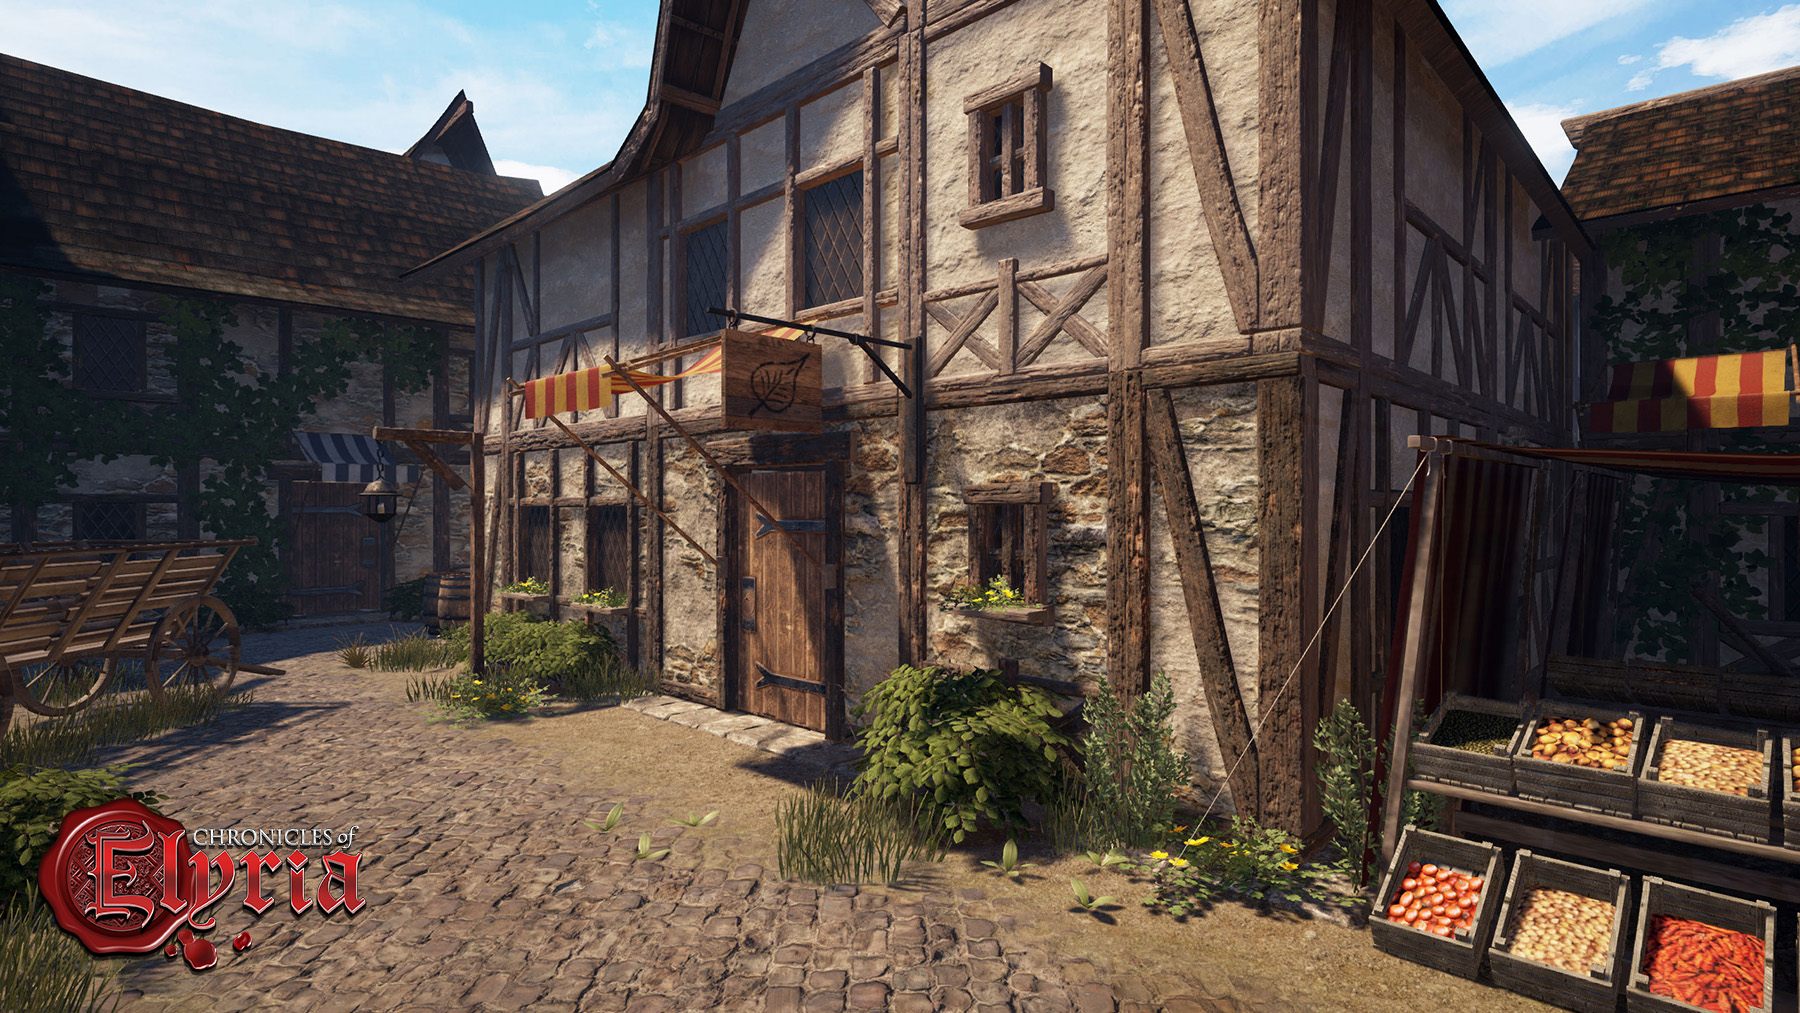 Screenshot showing completed inn exterior